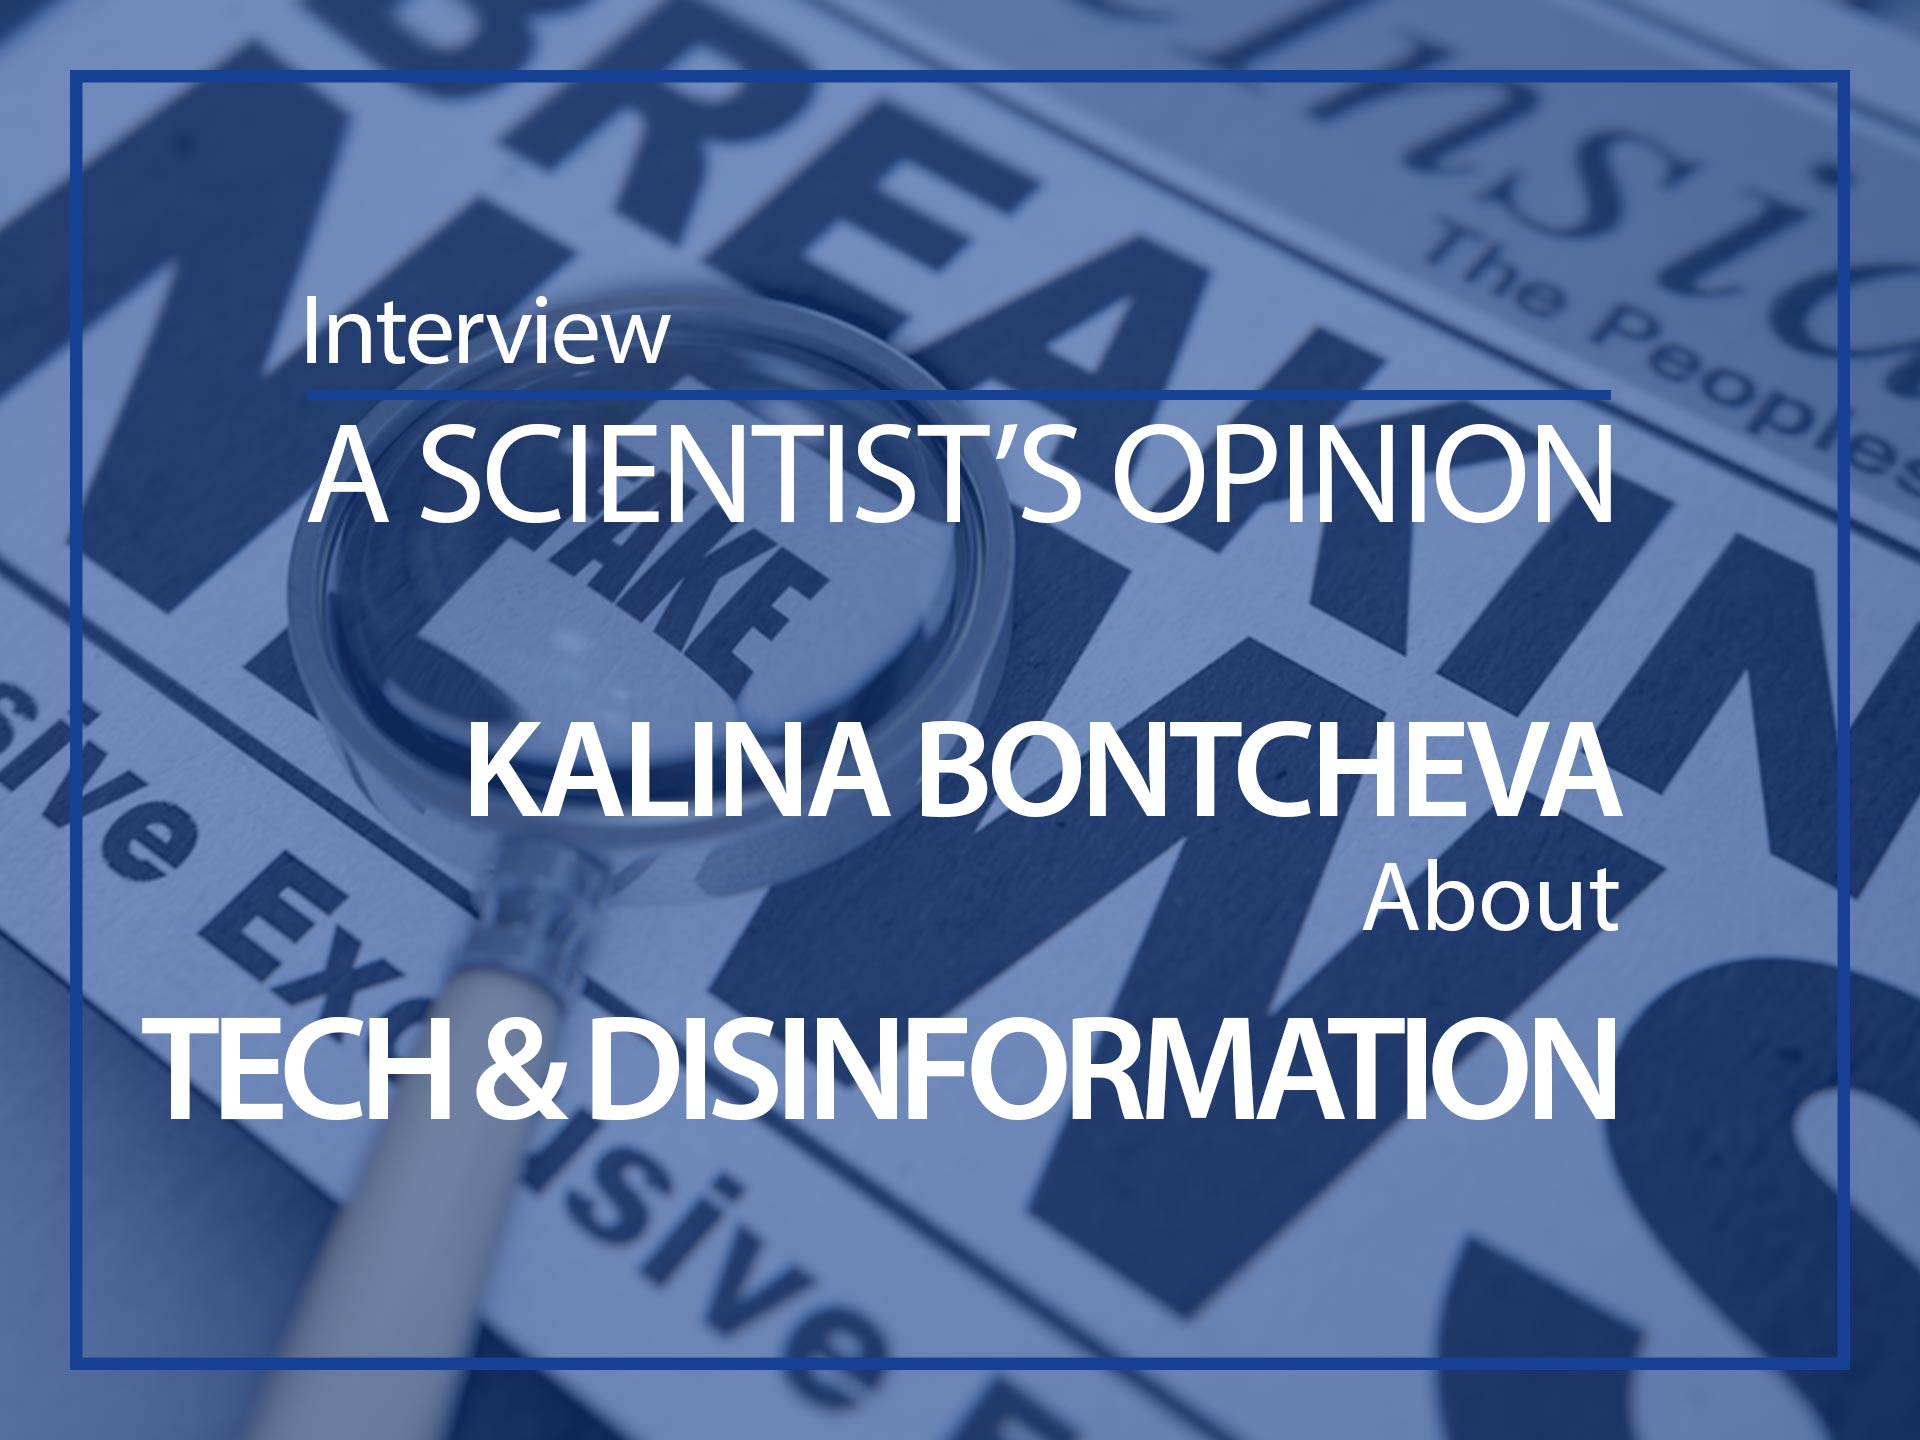 A scientist's opinion Kalina Bontcheva, an ESMH interview